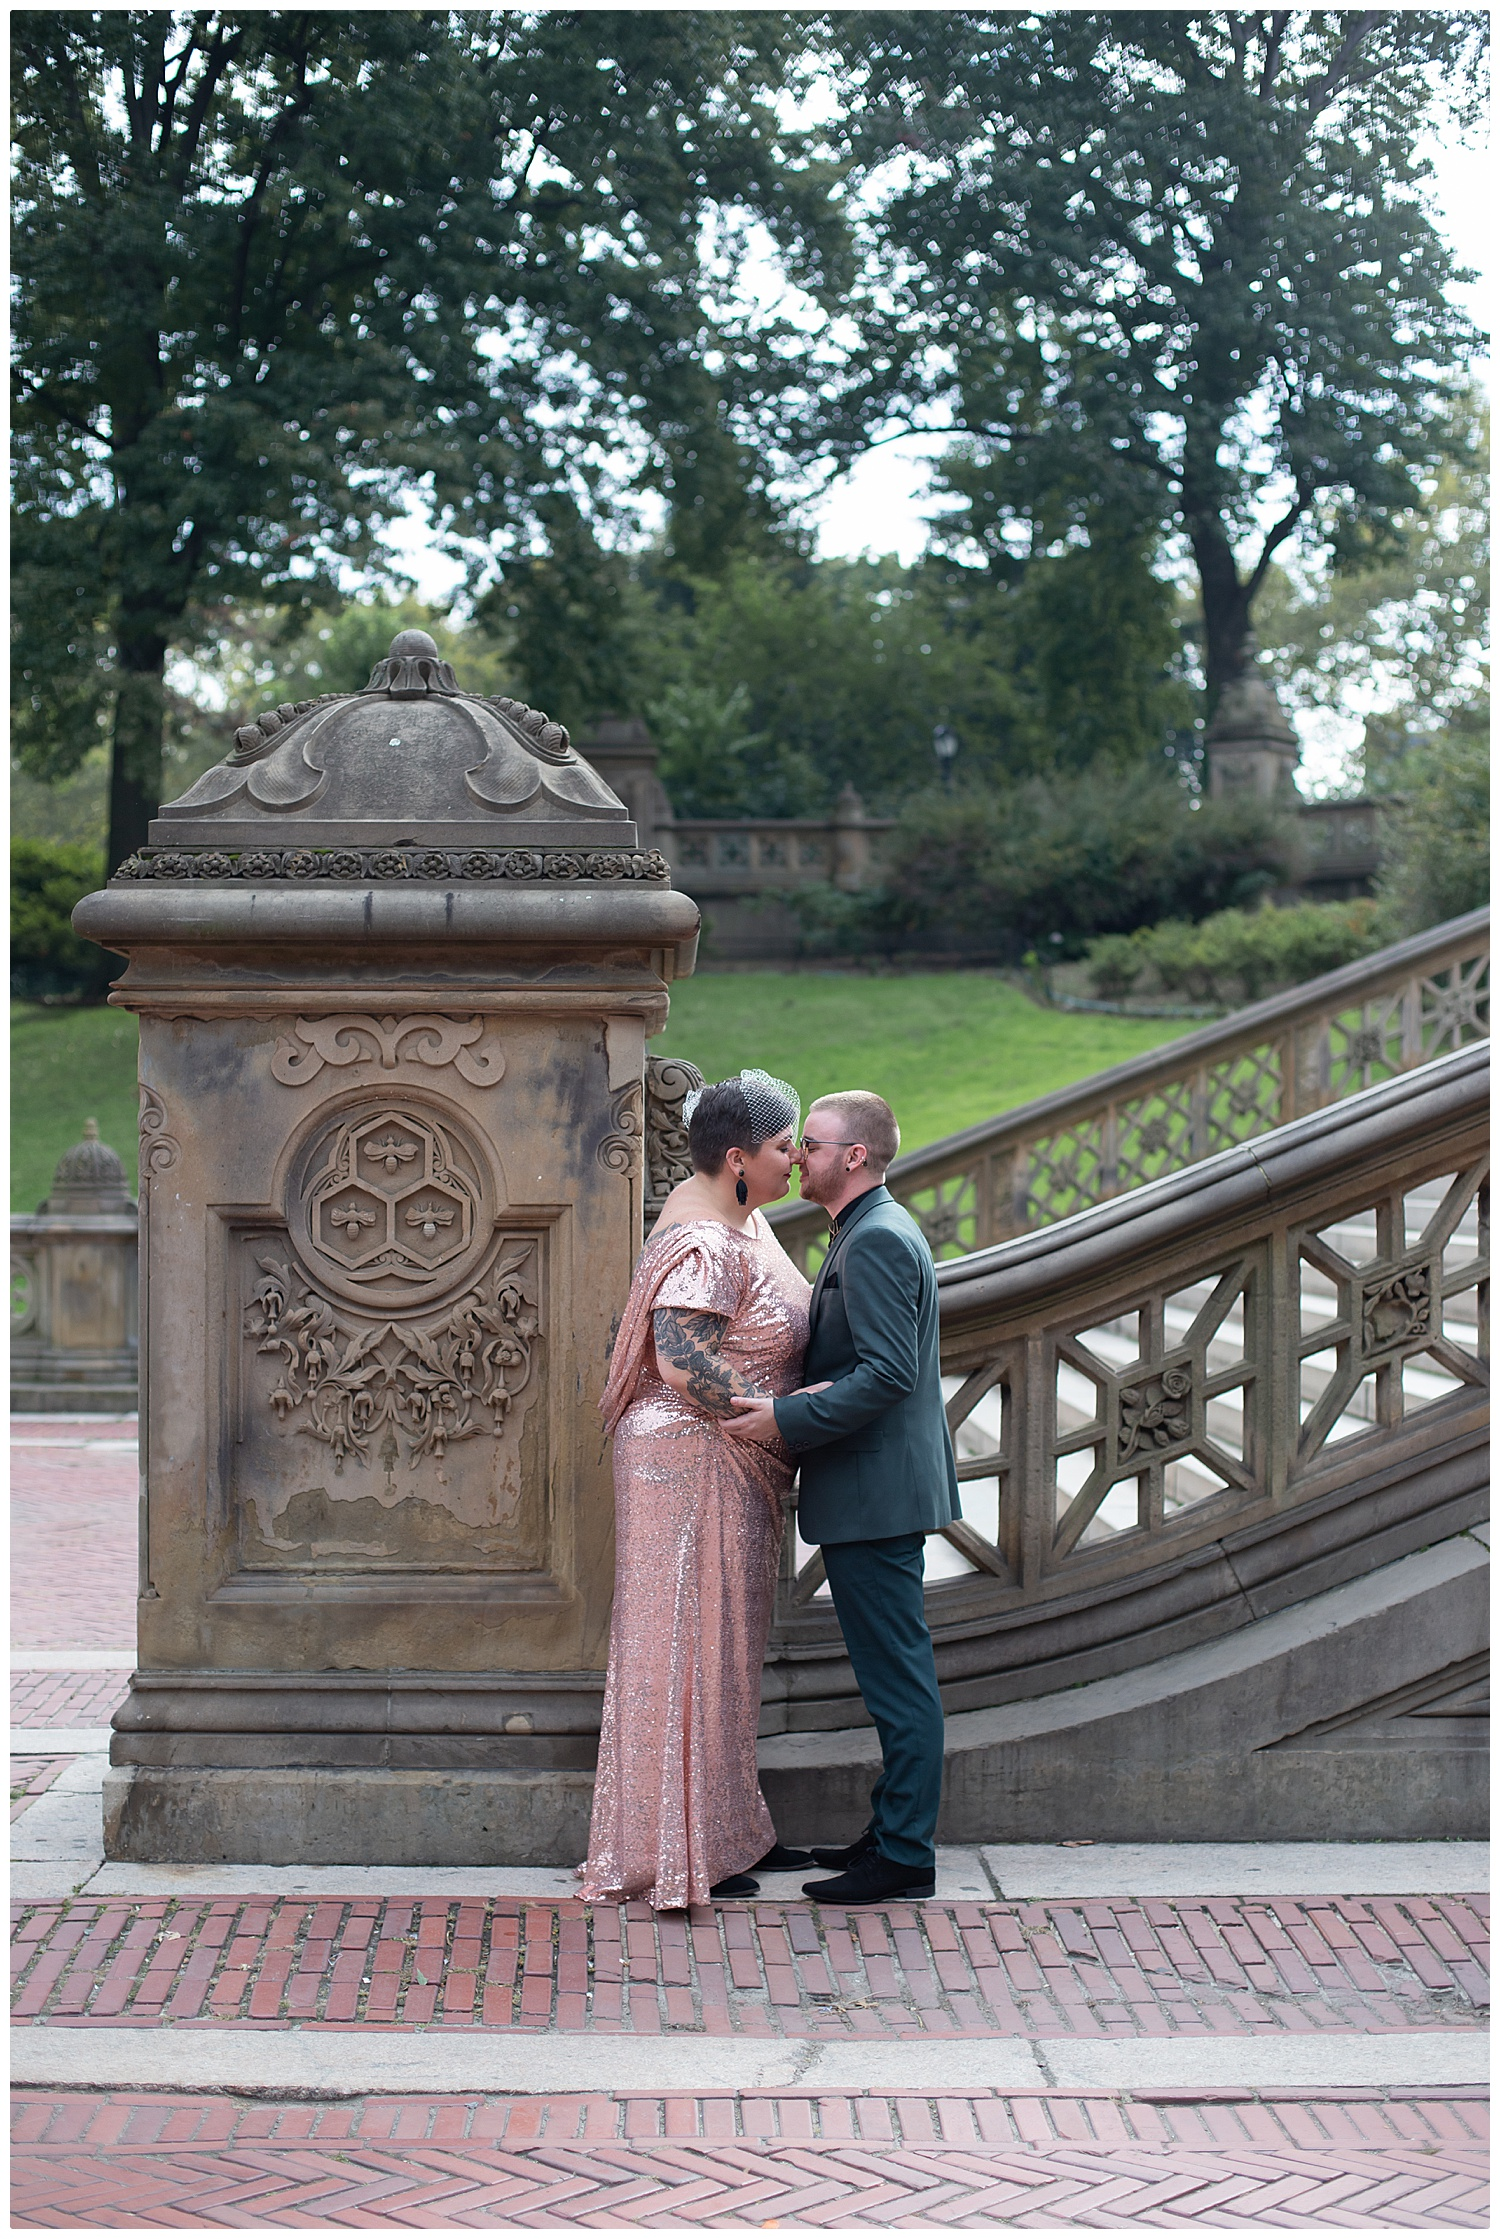 Kate-Alison-Photography-NYC-Central-Park-Elopement_0005.jpg